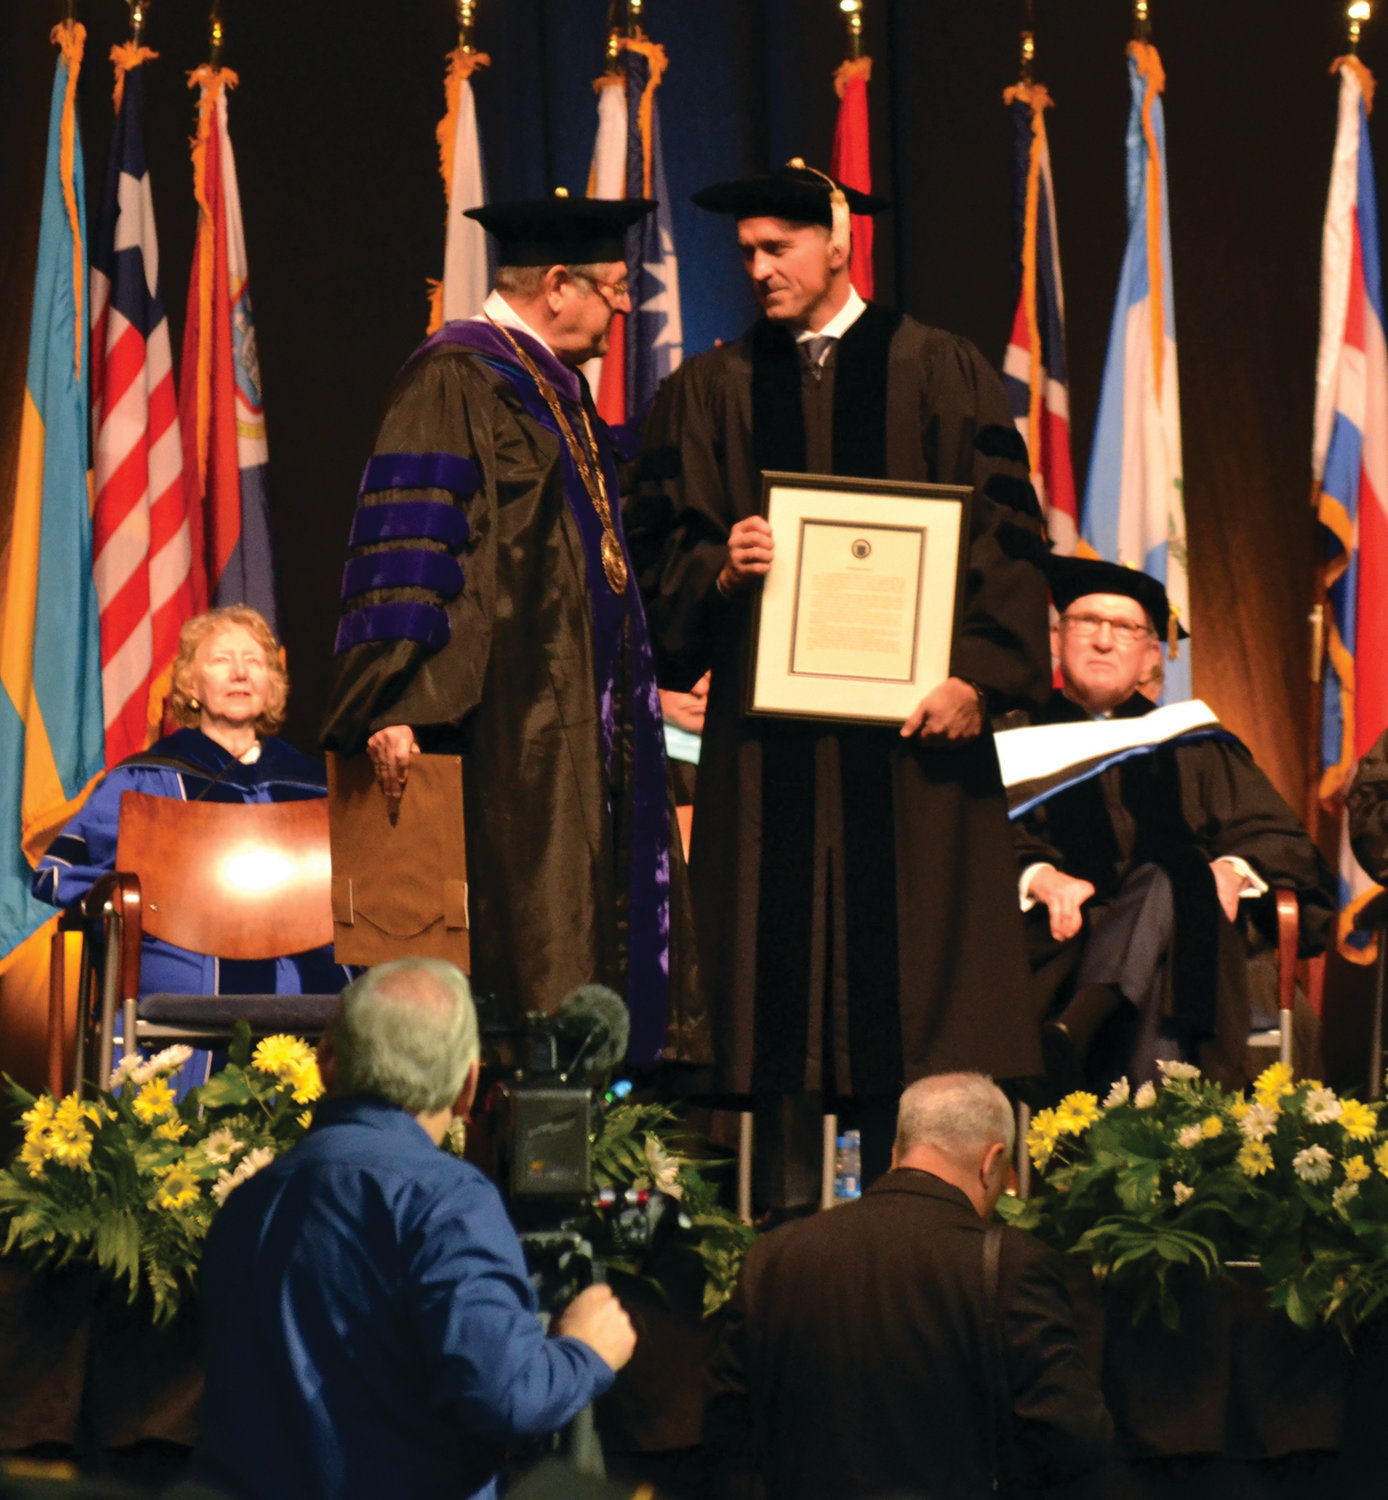 DR. HERREN: NEIT President Richard I. Gouse (left) presented Chris Herren (right) and Donald R. Sweitzer with honorary doctor of humane letters degrees.